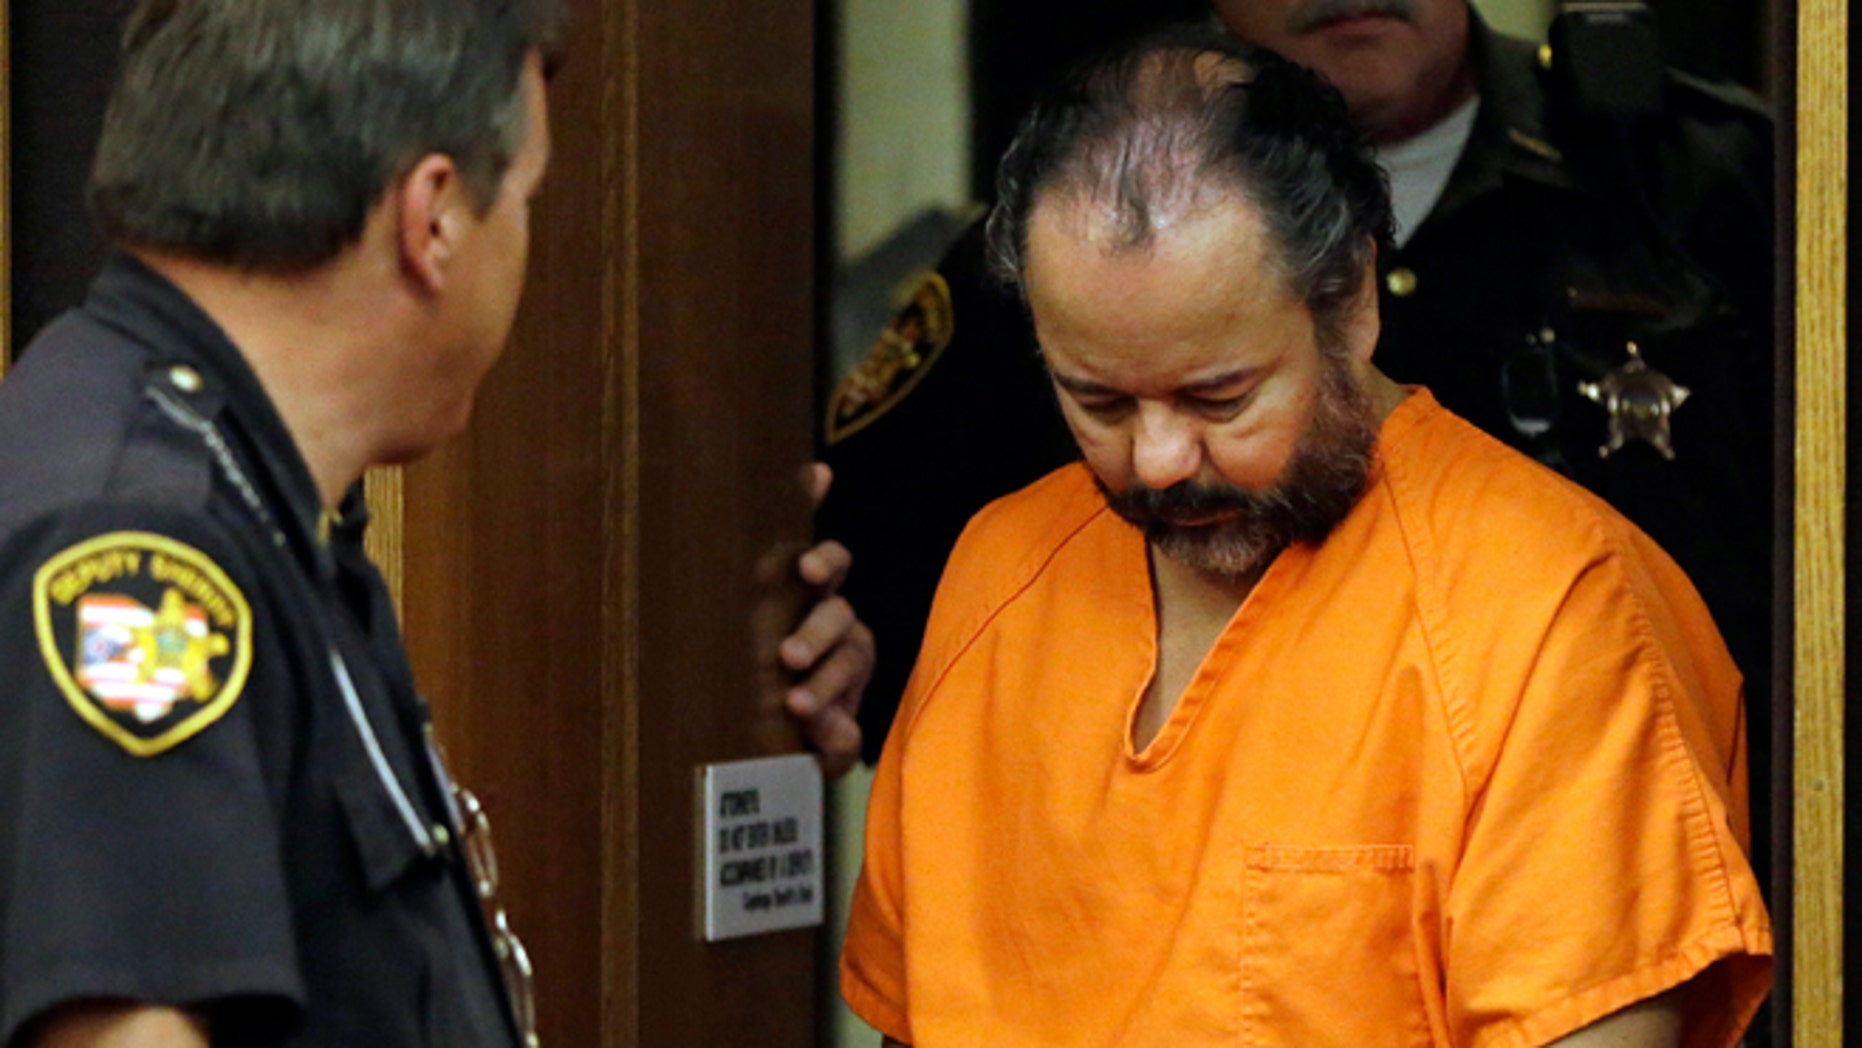 July 3: Ariel Castro is led into Cuyahoga County Common Pleas Court in Cleveland for a pretrial hearing